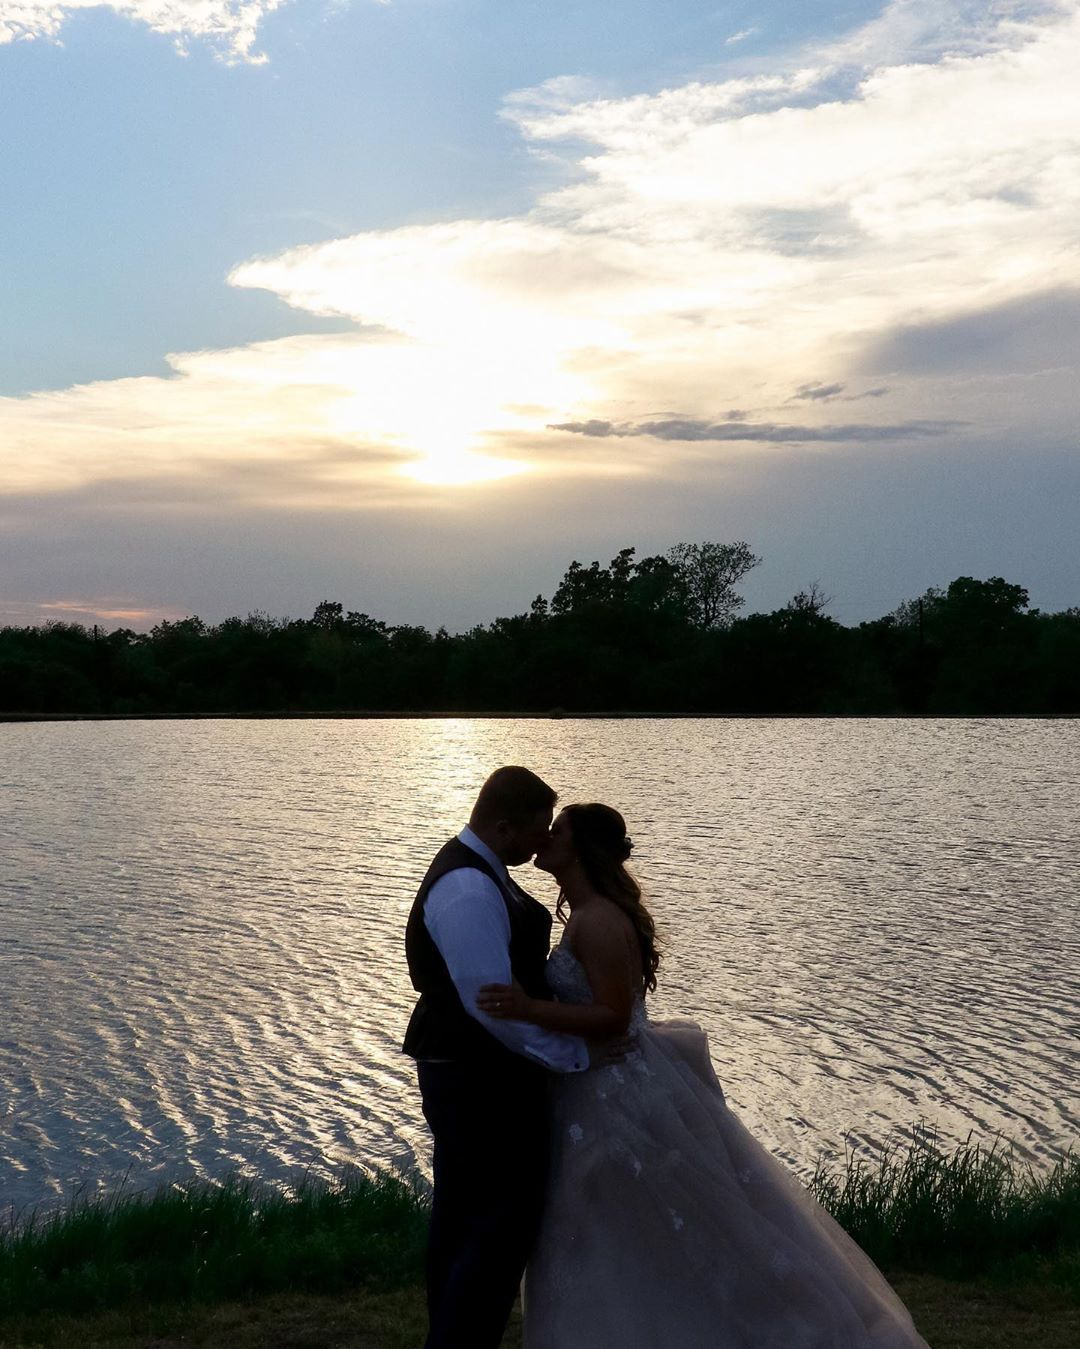 Another beautiful sunset over ranch outdoor ranch wedding ...